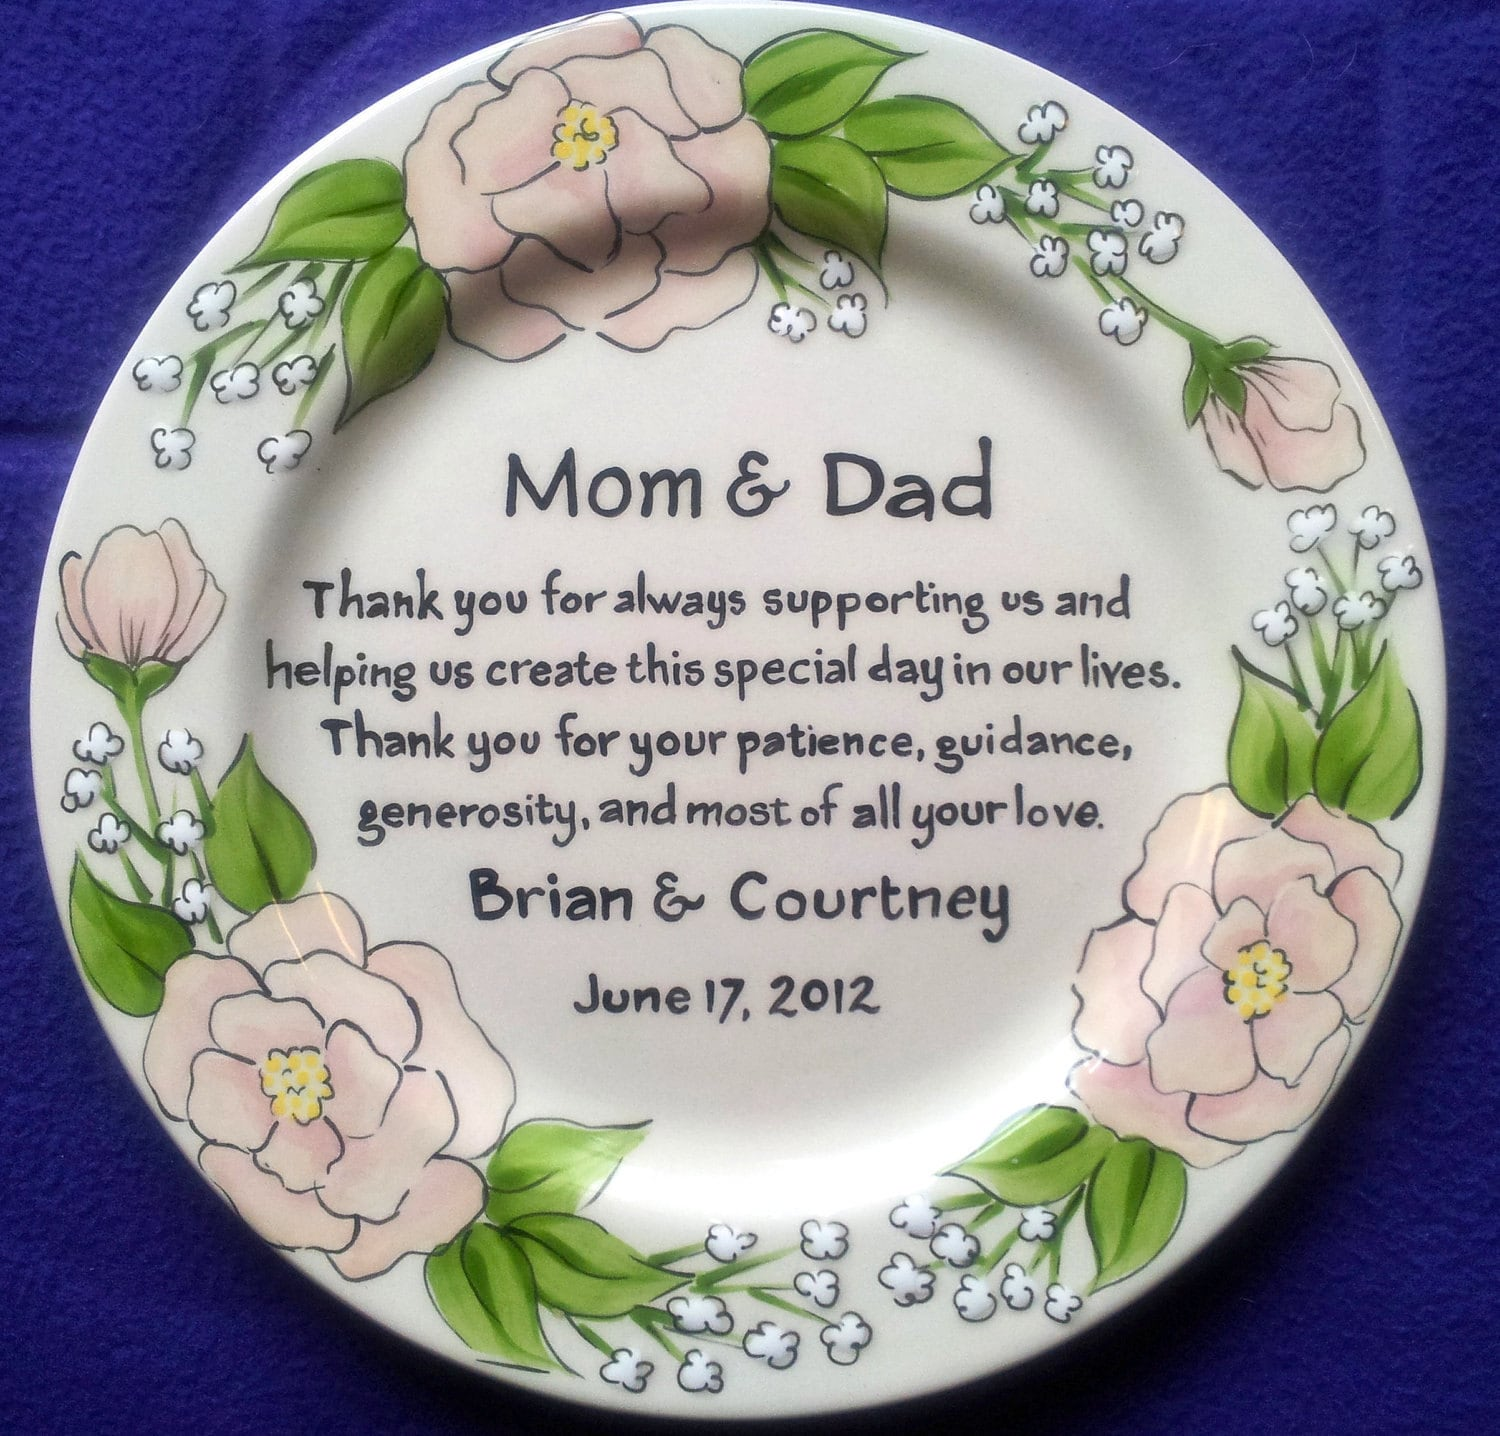 Best Gifts For Parents For Wedding: Wedding Mother Of The Bride Gift Personalized To My Mom And